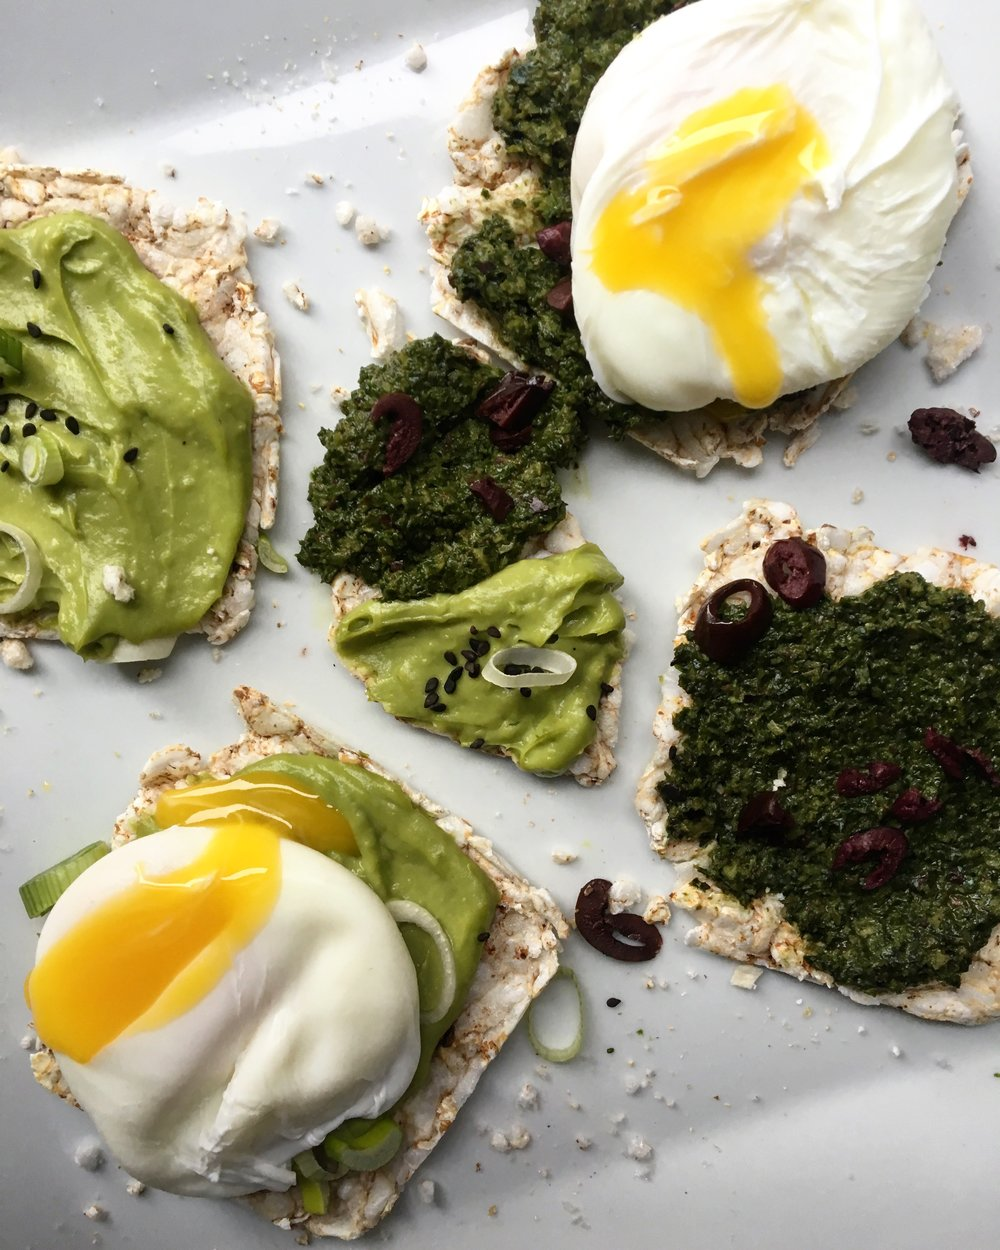 Miso Guac + Kale/Olive Tapenade/ Poached Egg